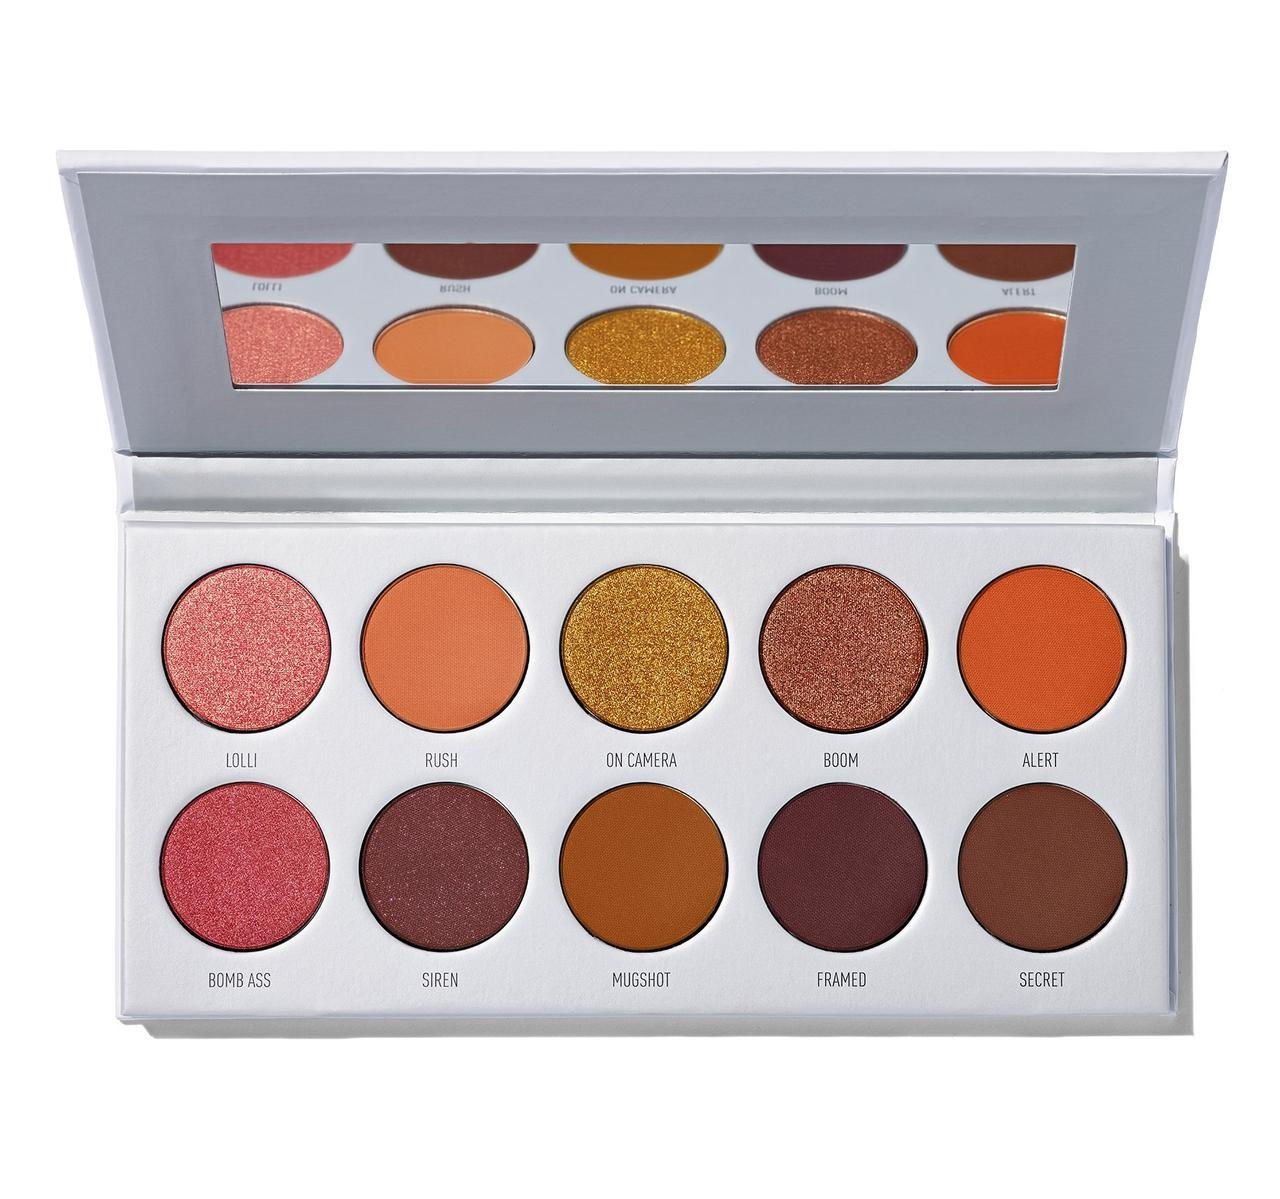 Палетка теней Morphe Ring The Alarm Eyeshadow Palette